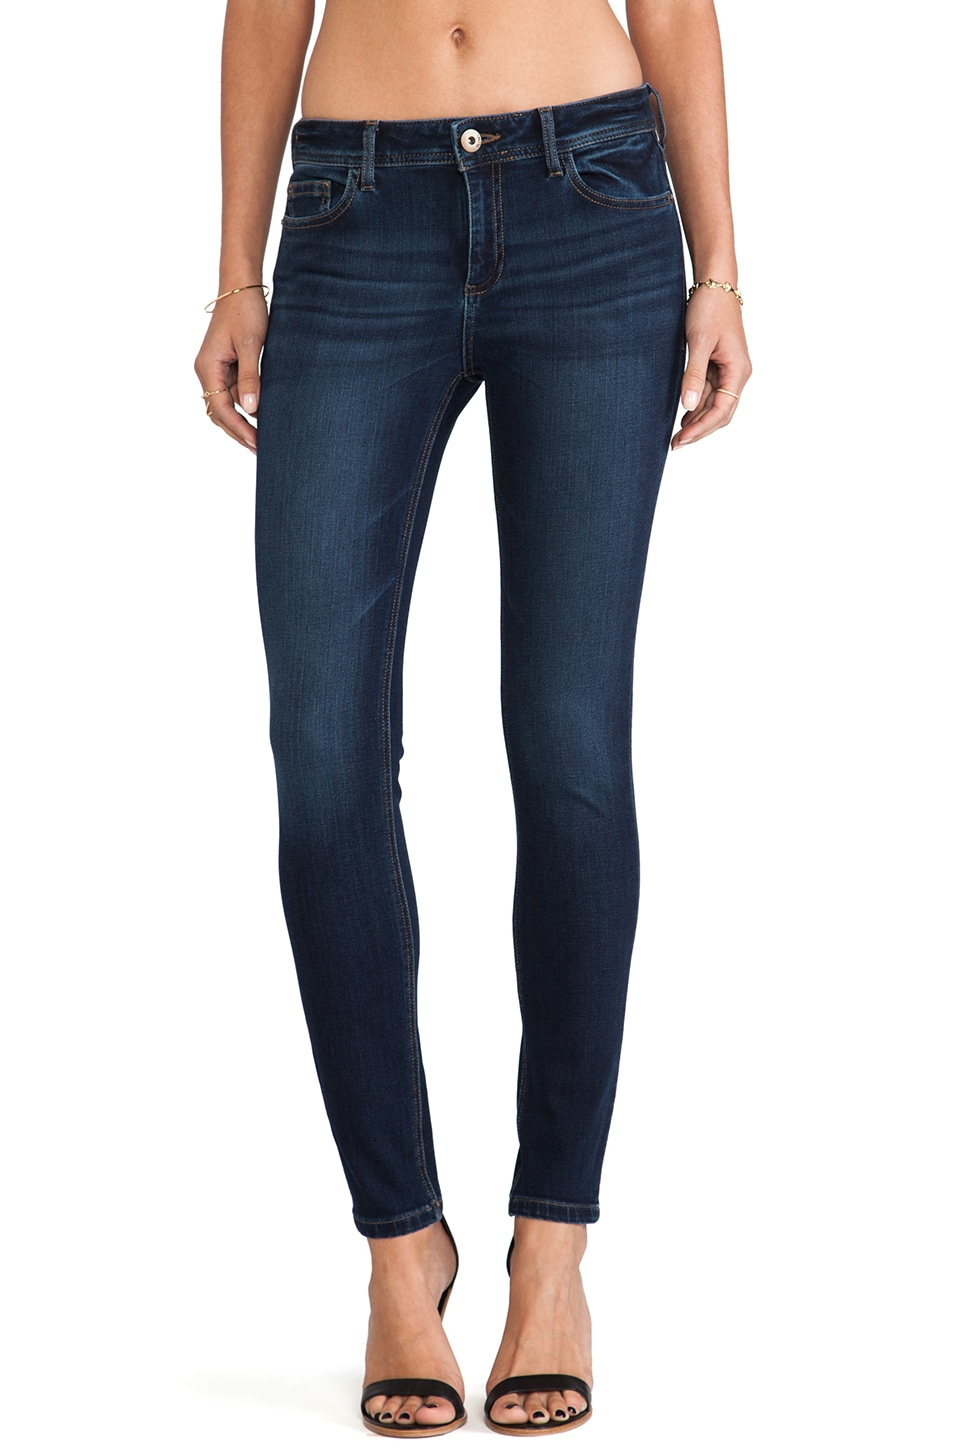 DL1961 Florence Mid Rise Skinny in Warner